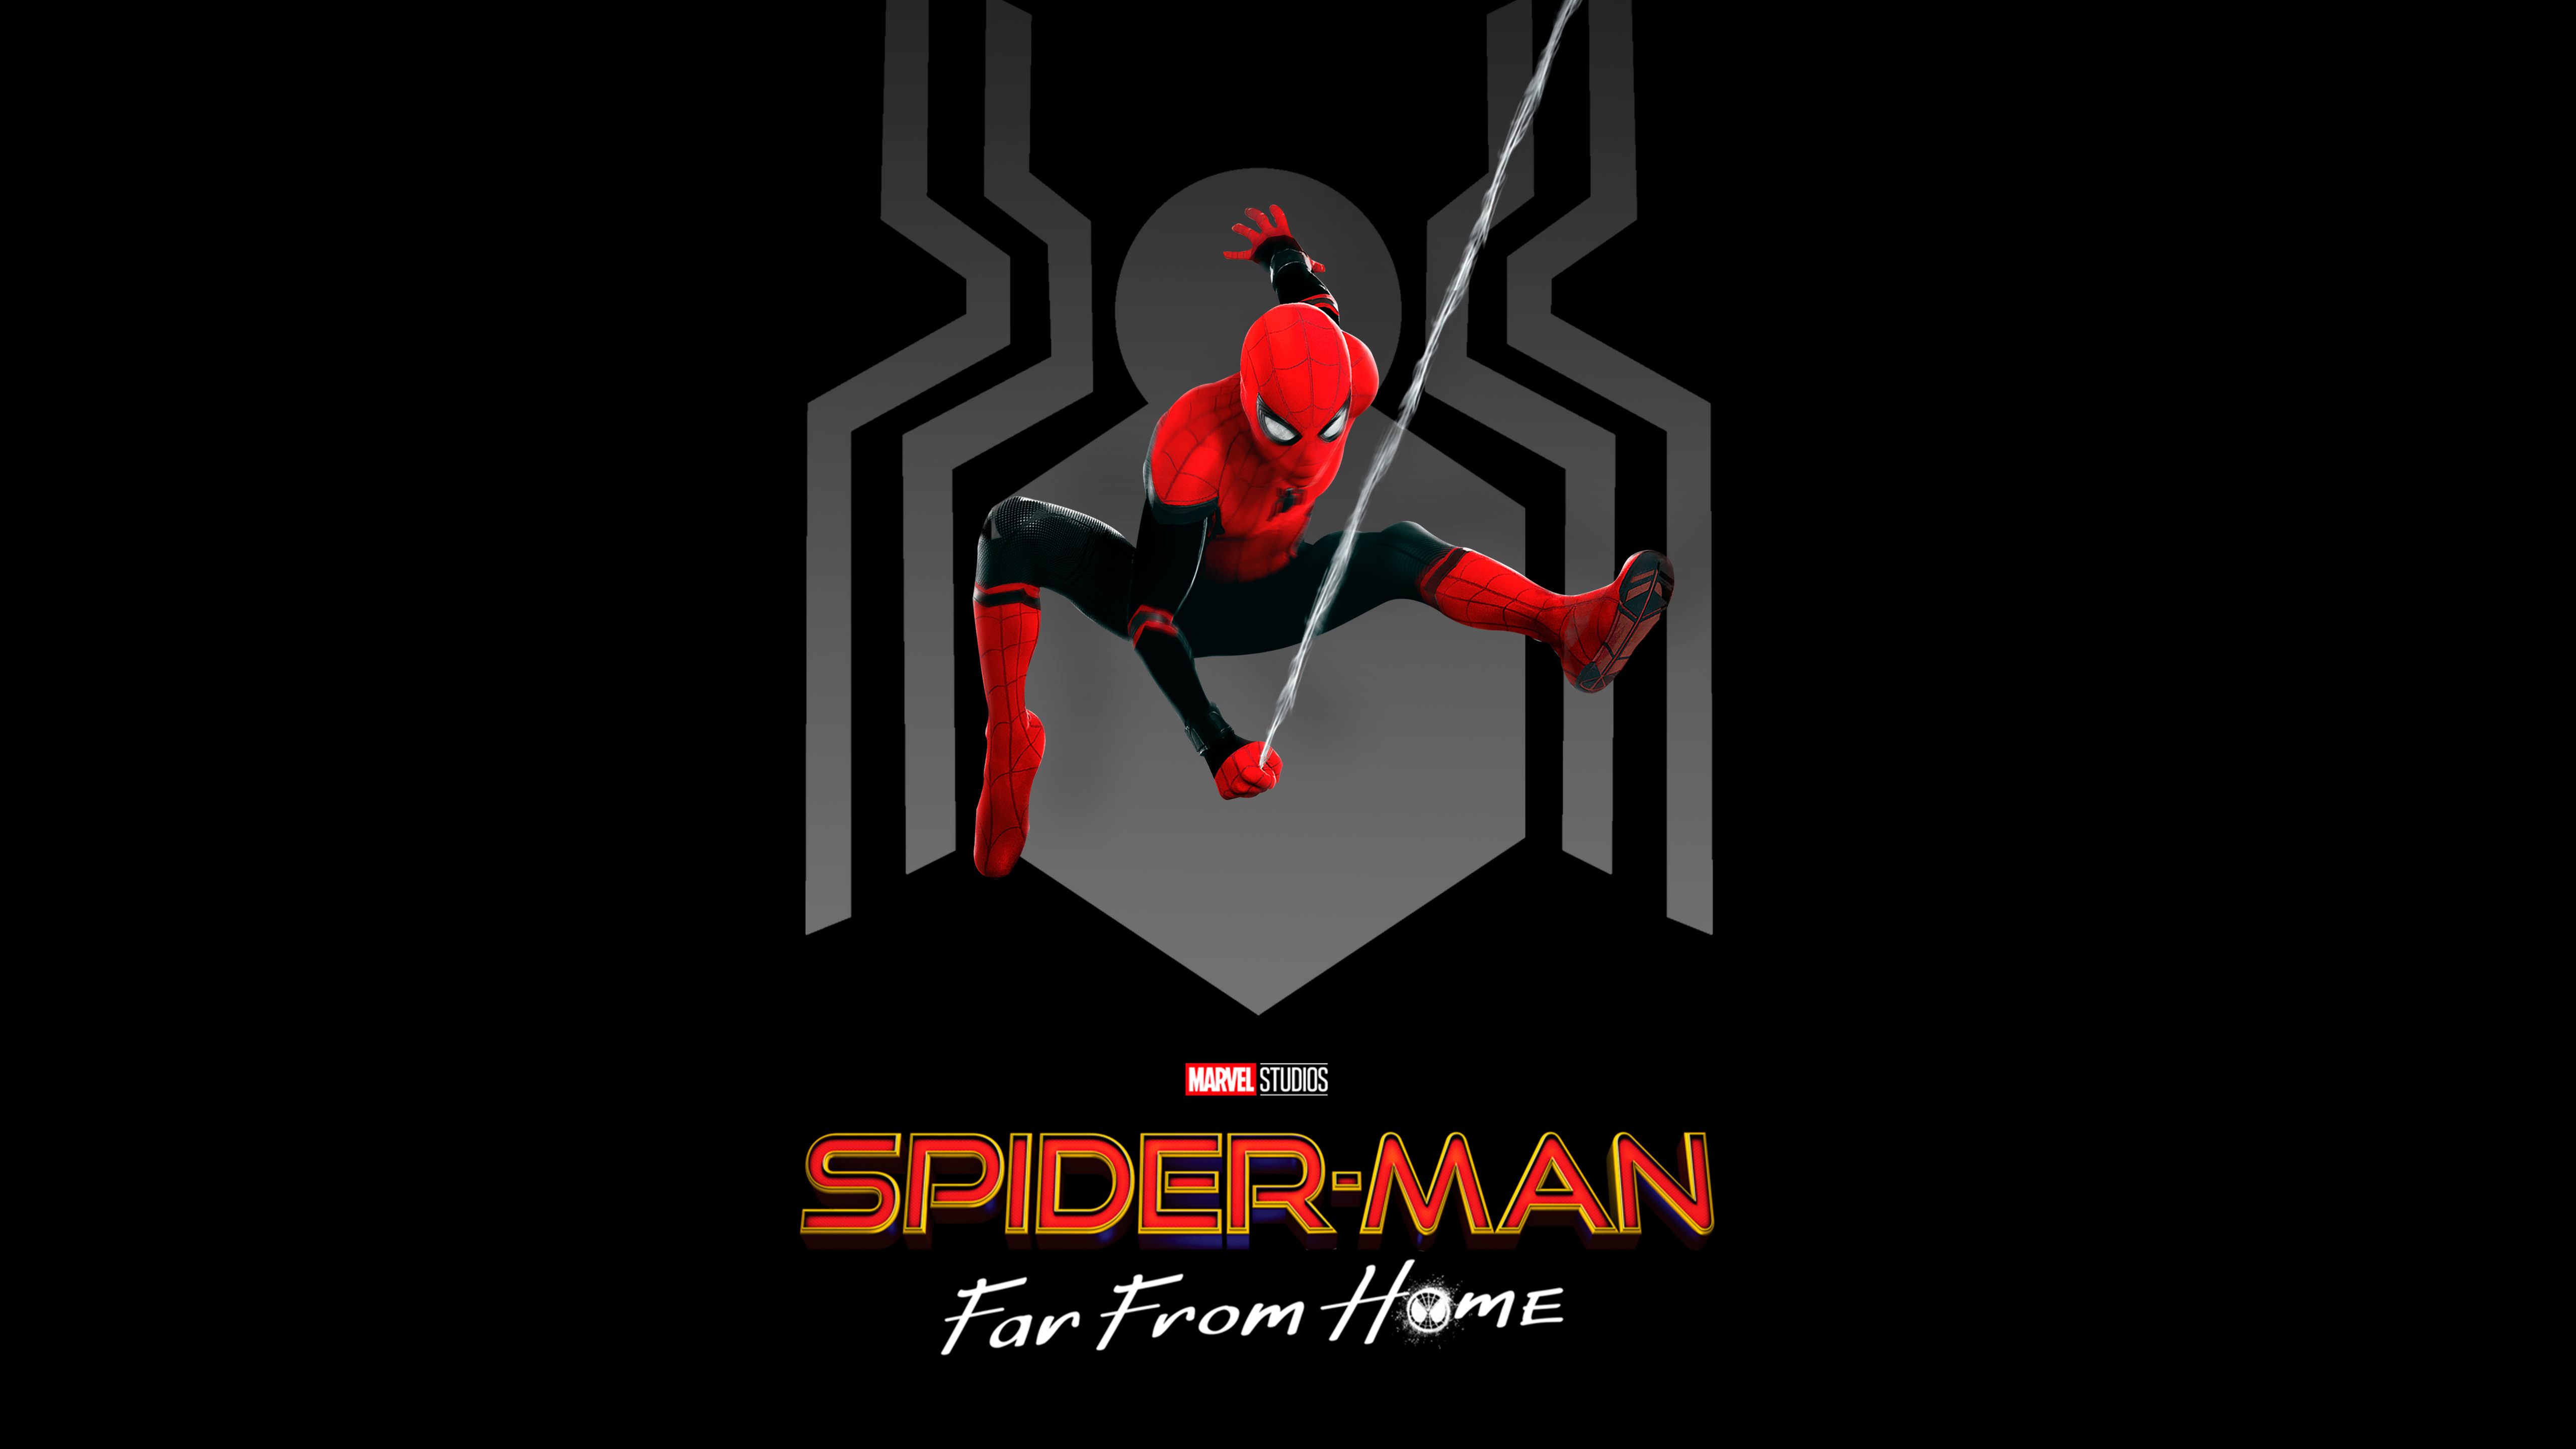 Spider Man Far From Home 4k 5k Wallpapers Hd Wallpapers